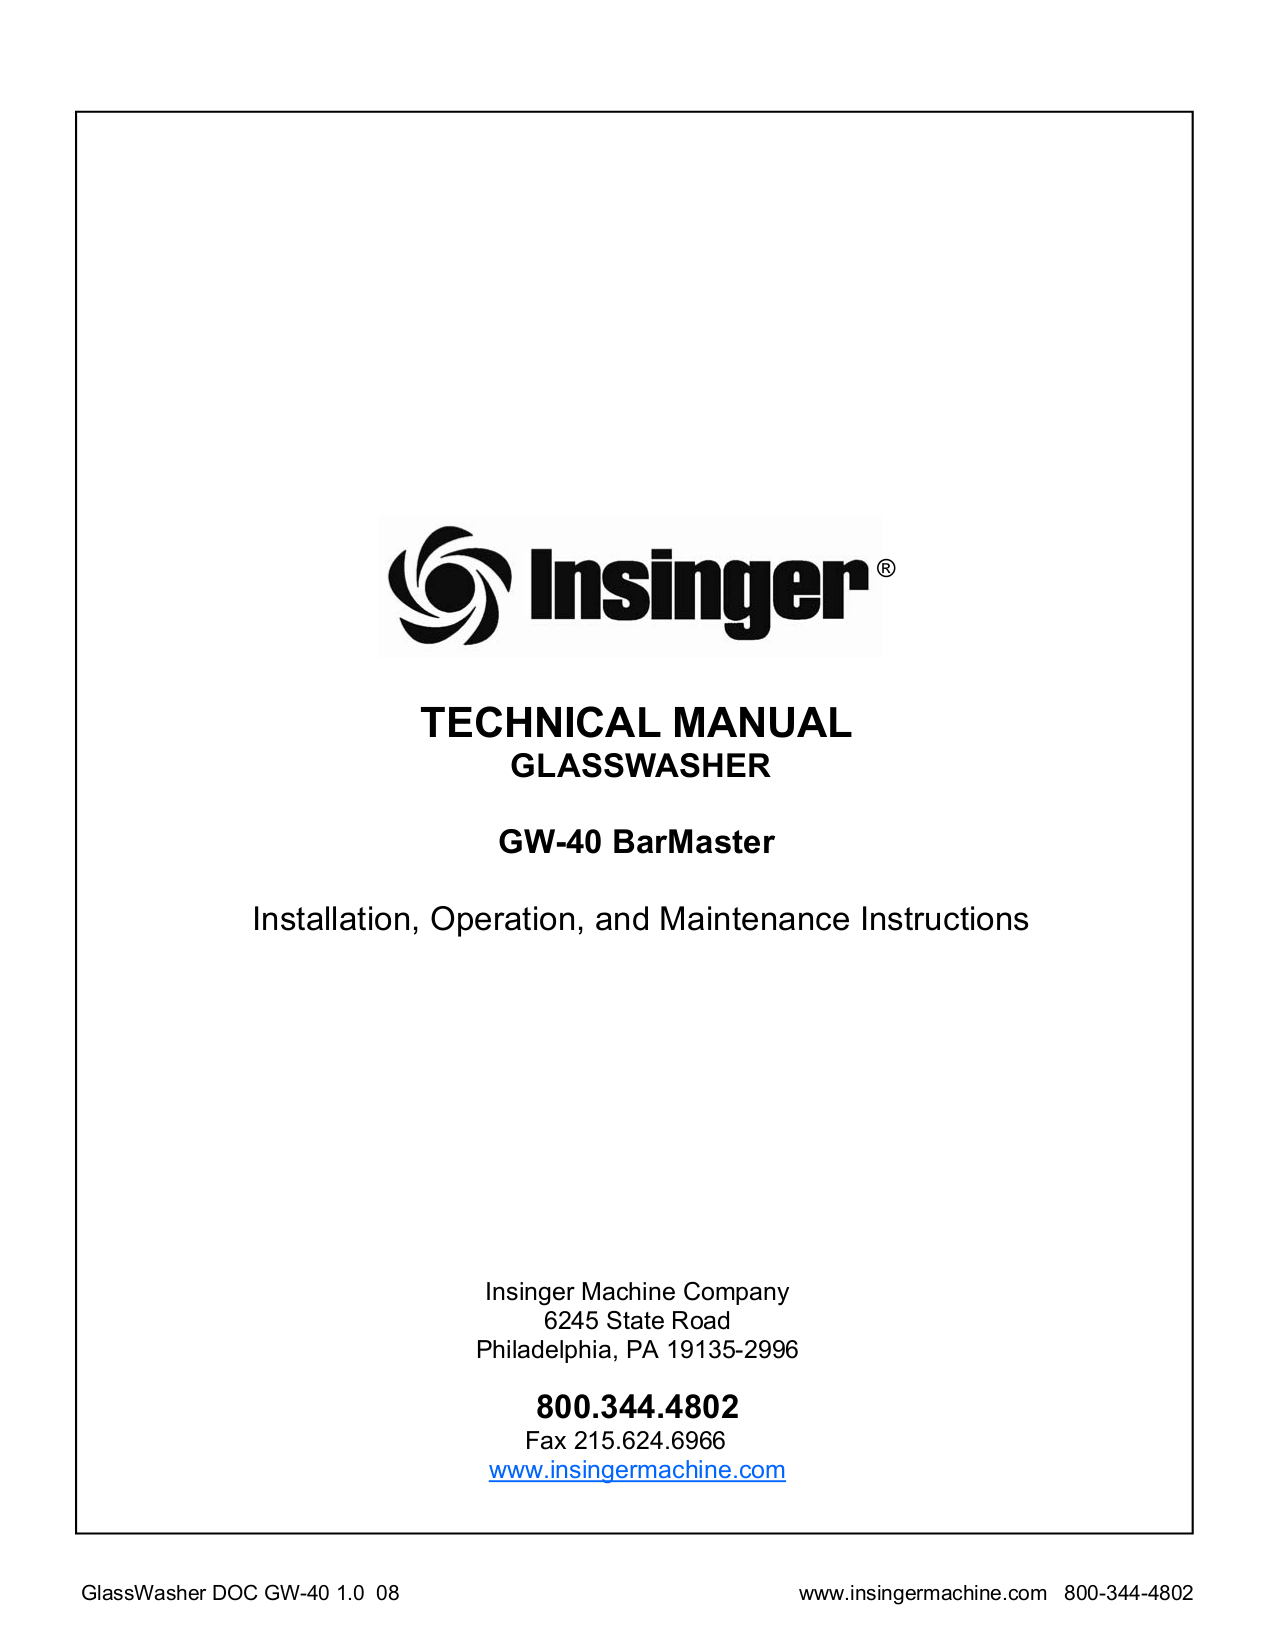 pdf for Insinger Other GW-40 Glasswashers manual